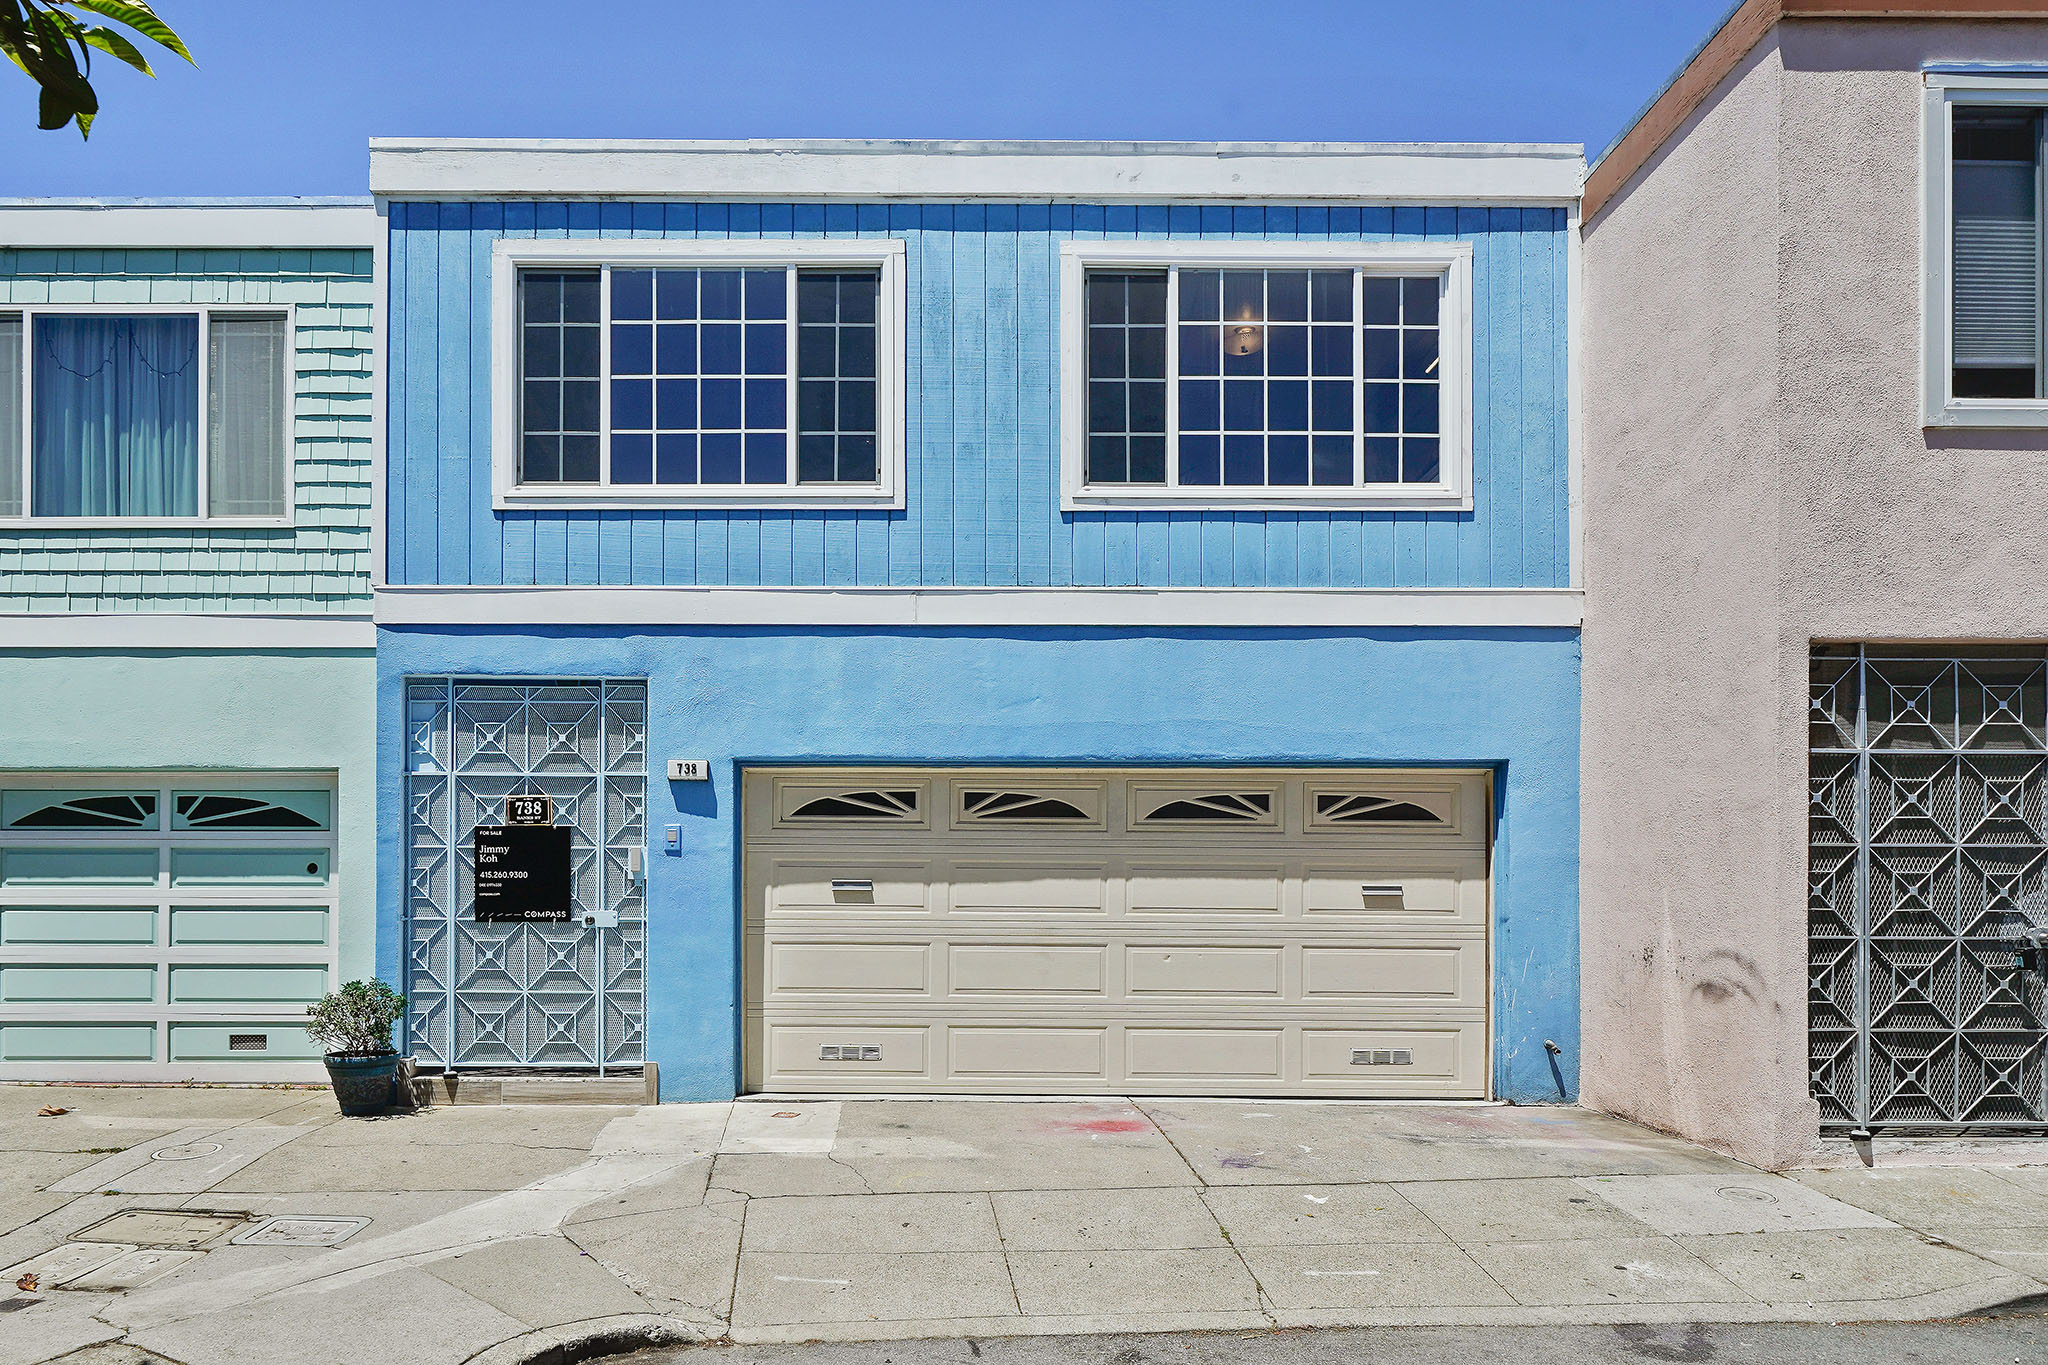 738 Banks St, San Francisco, CA 94110  Listed on 6/10/2019  Listed at $999,000 3 bedrooms | 2 bathroom 1509 sq ft  2 car garage  Bernal Heights move-in ready 3 bedroom, 2 bathroom home is a cul-de-sac property with plenty of upgrades! Top floor has a spacious open layout which brings in gorgeous natural light. Upstairs are 2 bedrooms and a renovated bathroom, with remodeled kitchen and newer appliances, plenty of cabinet storage. Private lower level is fully equipped with its own 1 bedroom, 1 bathroom, dining nook, living room, and kitchenette. Rent it out and live upstairs or vice-versa! Either way, great income potential! Convenient location with I-280 and US-101 just minutes away, 30 minute walk to Glen Park BART Station, steps away from weekly Farmer's Market, and a few blocks from the vibrant shops of Cortland Ave.  OPEN HOUSE Saturday, June 22nd, 2019 | 12:00 - 3:00pm Sunday, June 23rd, 2019 | 1:00 - 4:00pm  For more information and photos, please visit  www.738banks.com .